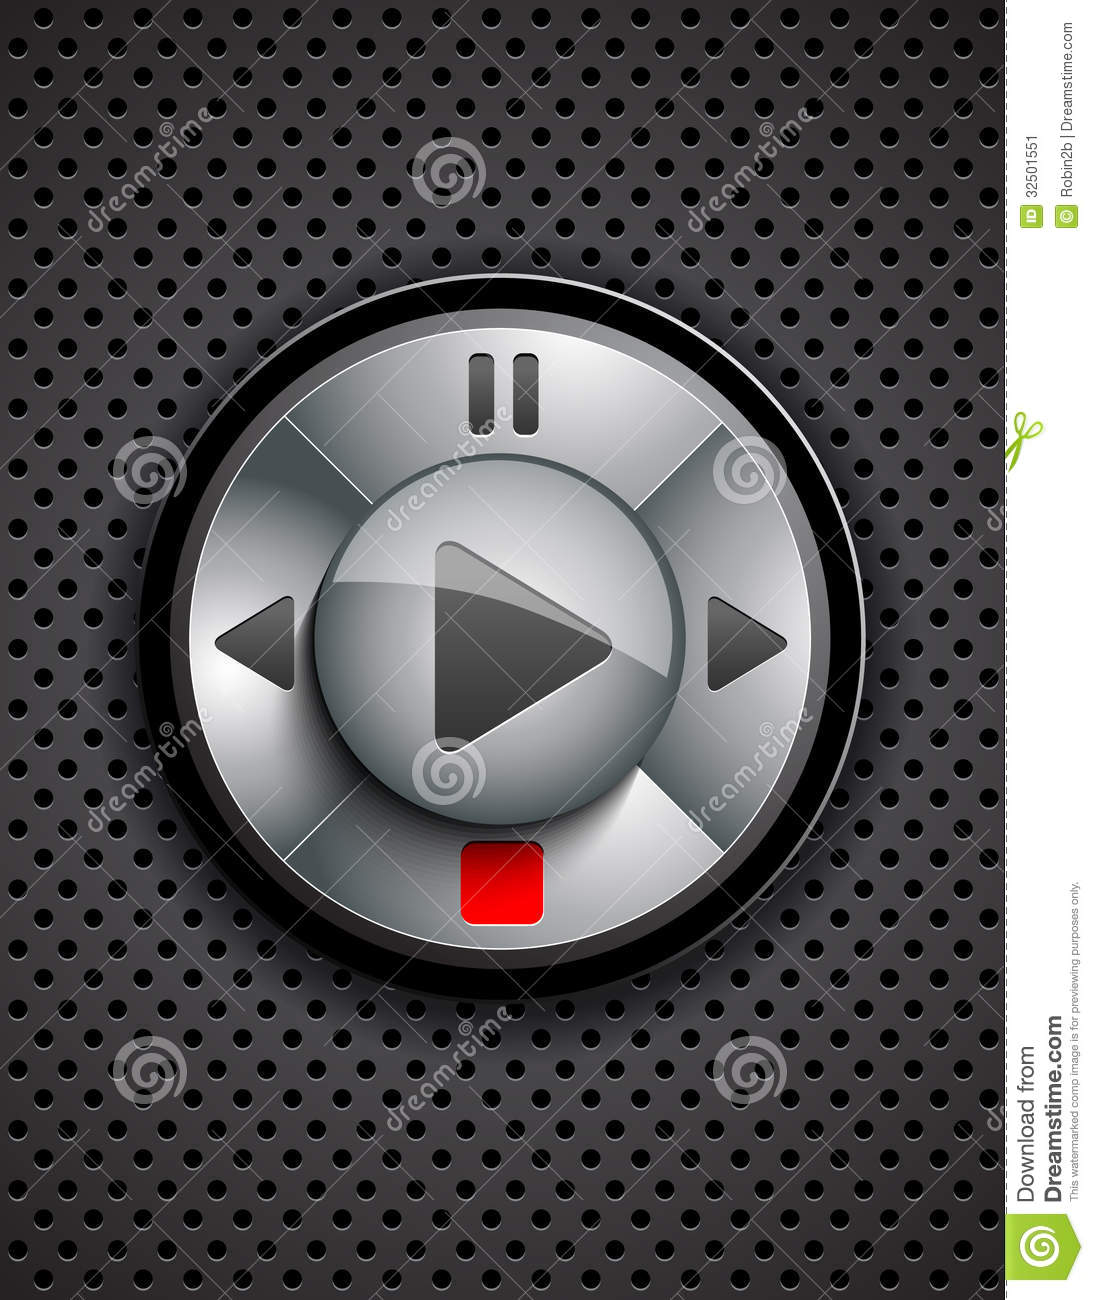 Music Player Stock Image - Image: 32501551